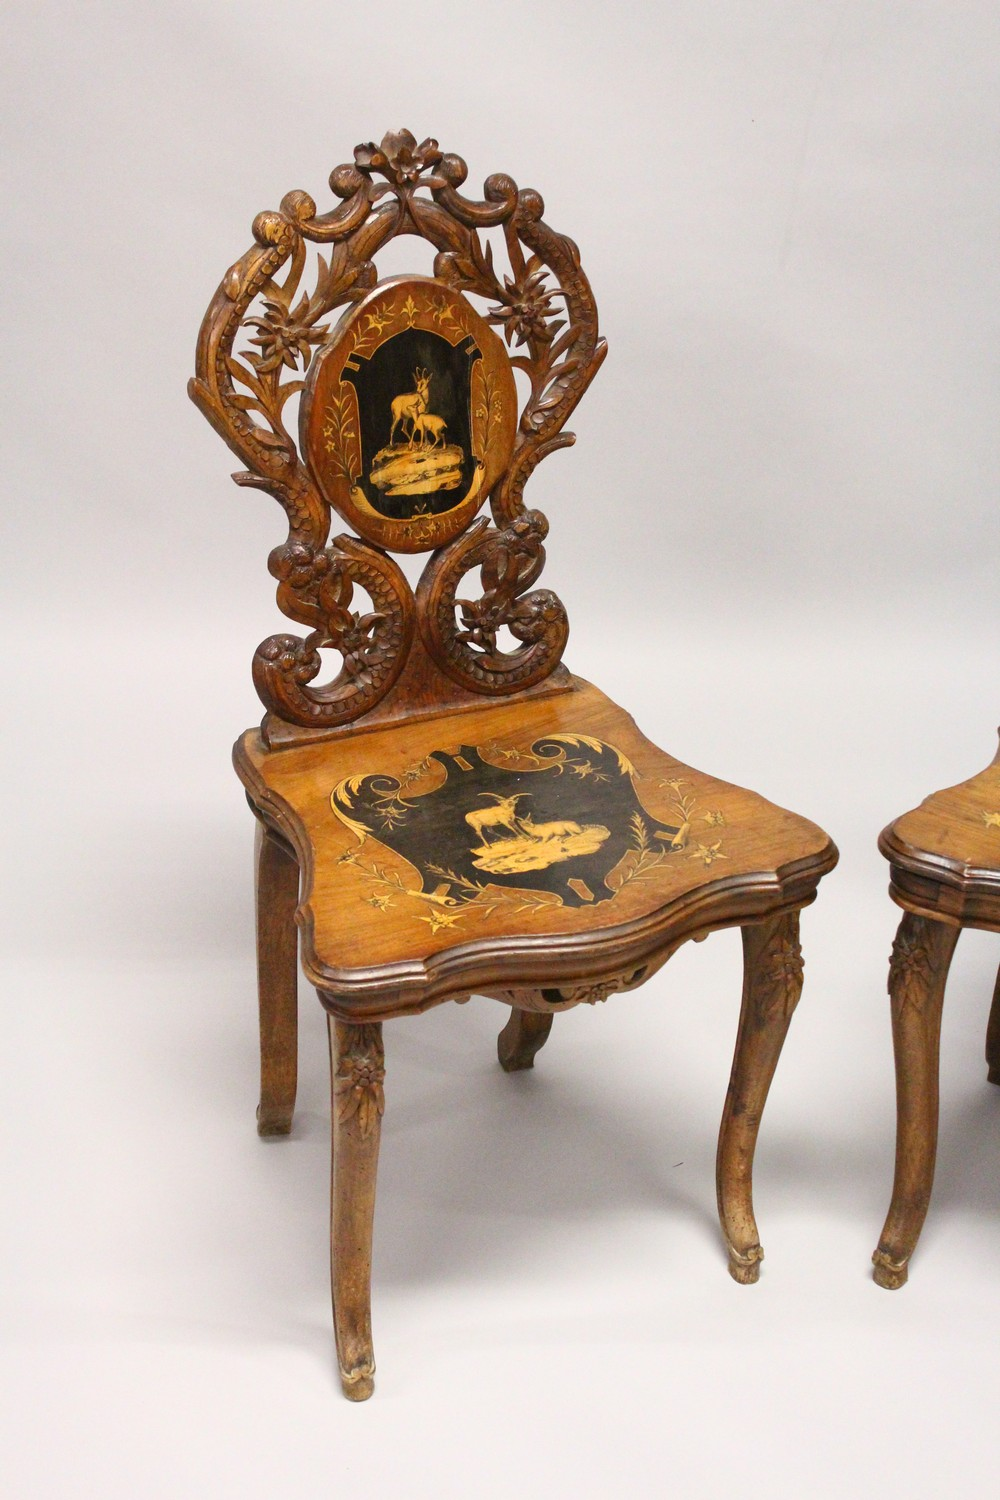 Lot 1003 - A PAIR OF LATE 19TH CENTURY BLACK FOREST INLAID MUSICAL SIDE CHAIRS, with inlaid backs and seats.